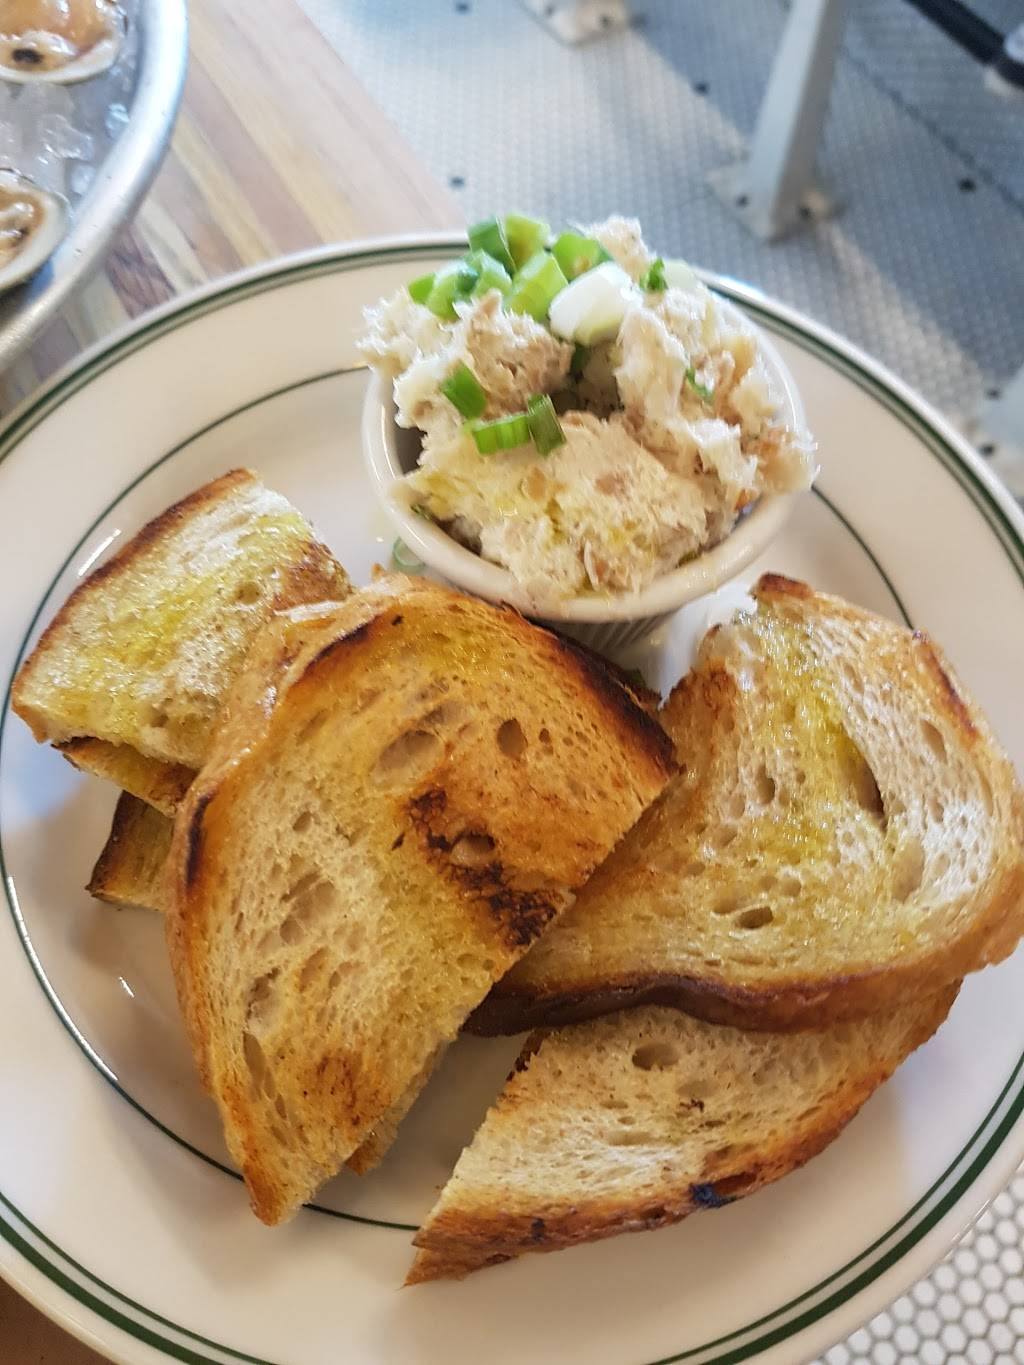 Greenpoint Fish & Lobster Co. | restaurant | 114 Nassau Ave, Brooklyn, NY 11222, USA | 7183490400 OR +1 718-349-0400